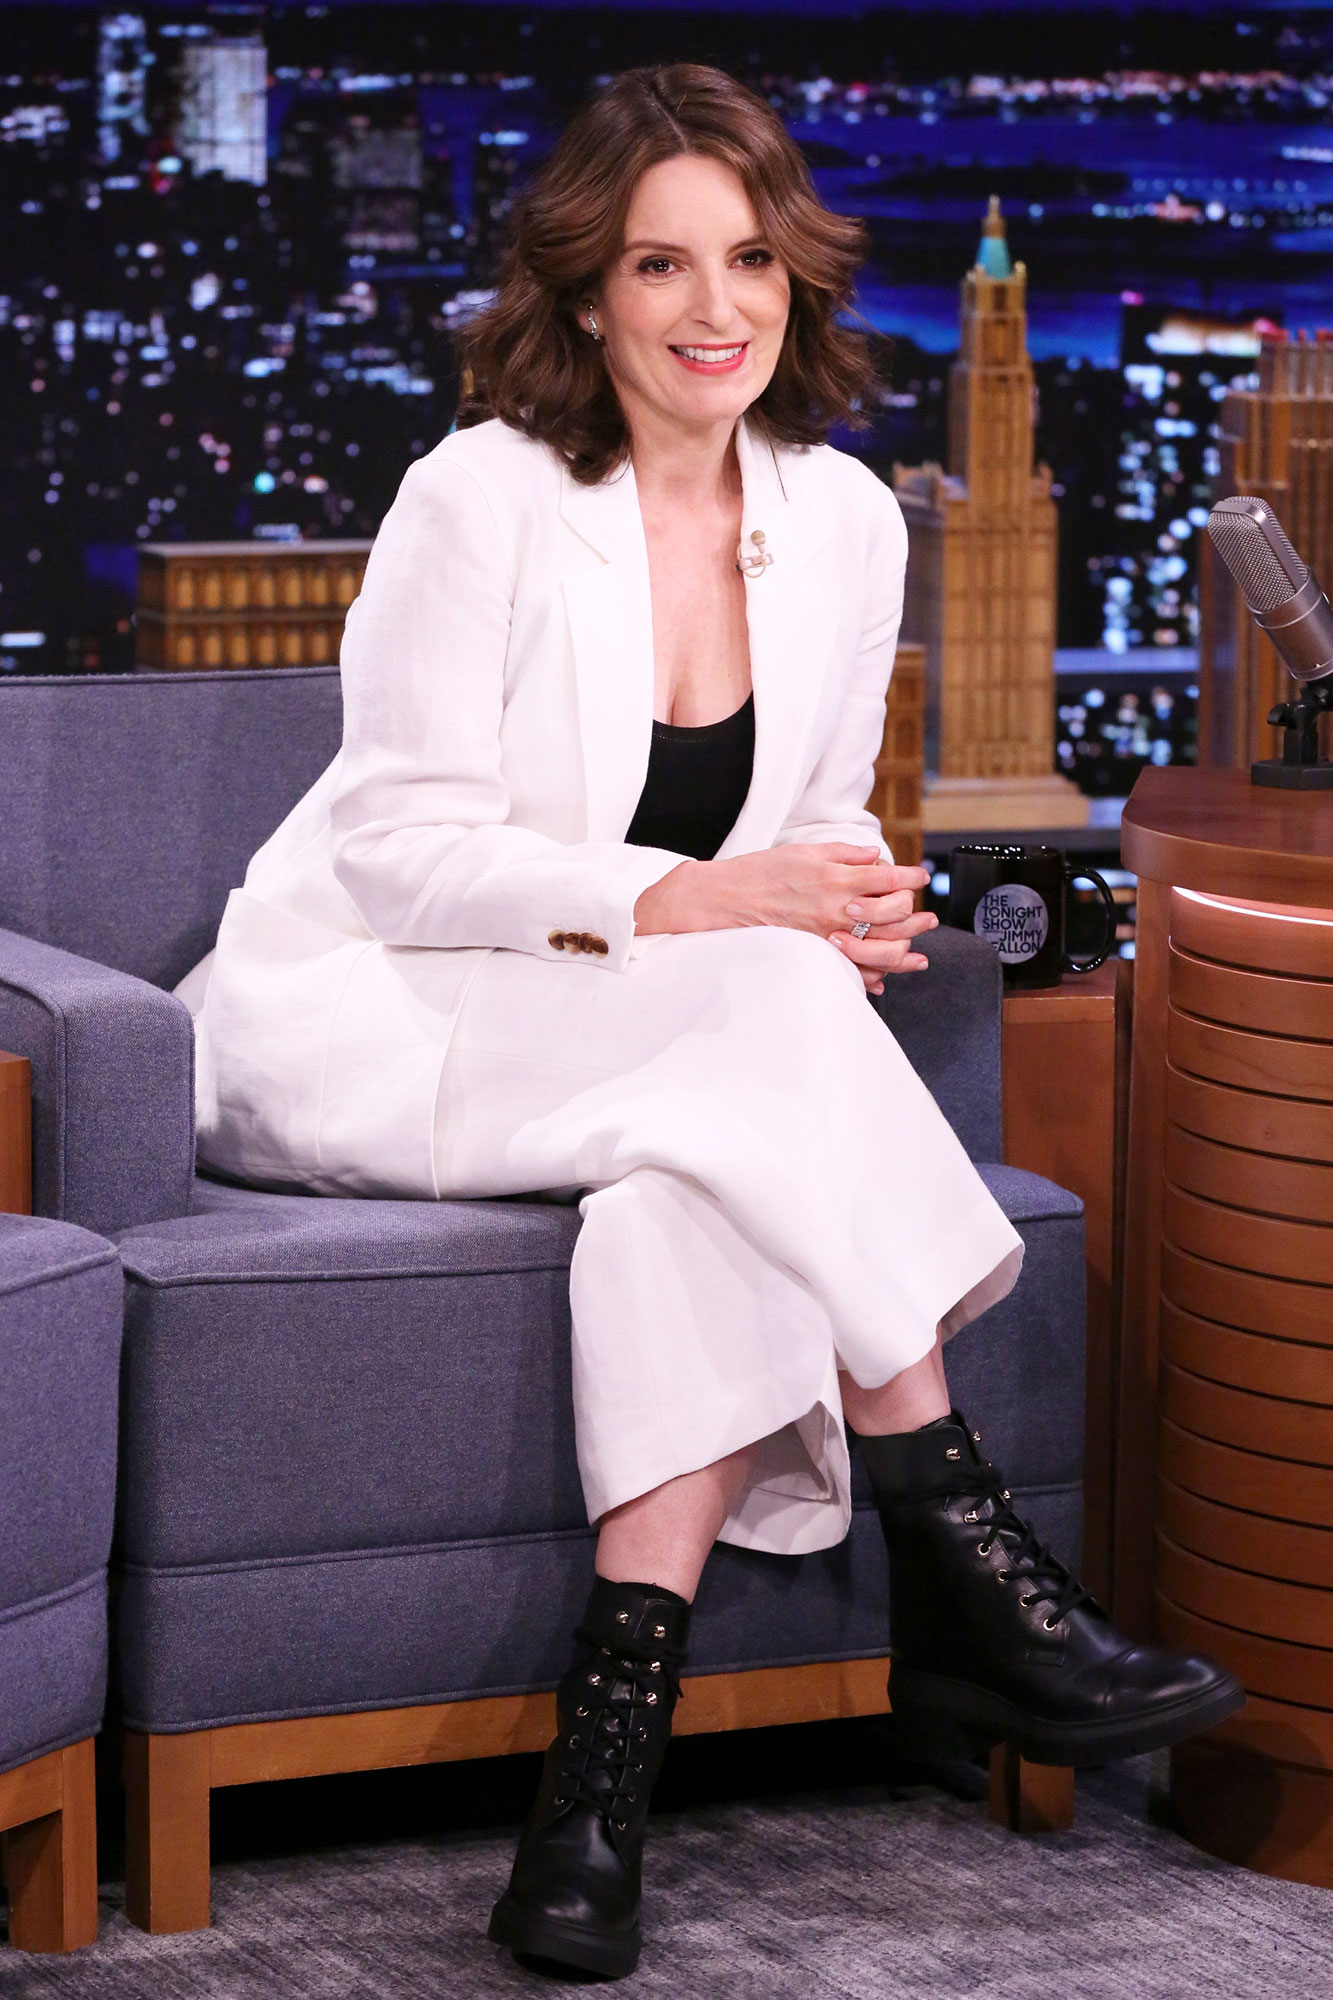 THE TONIGHT SHOW STARRING JIMMY FALLON -- Episode 1467 -- Pictured: Actress Tina Fey during an interview on Thursday, May 20, 2021